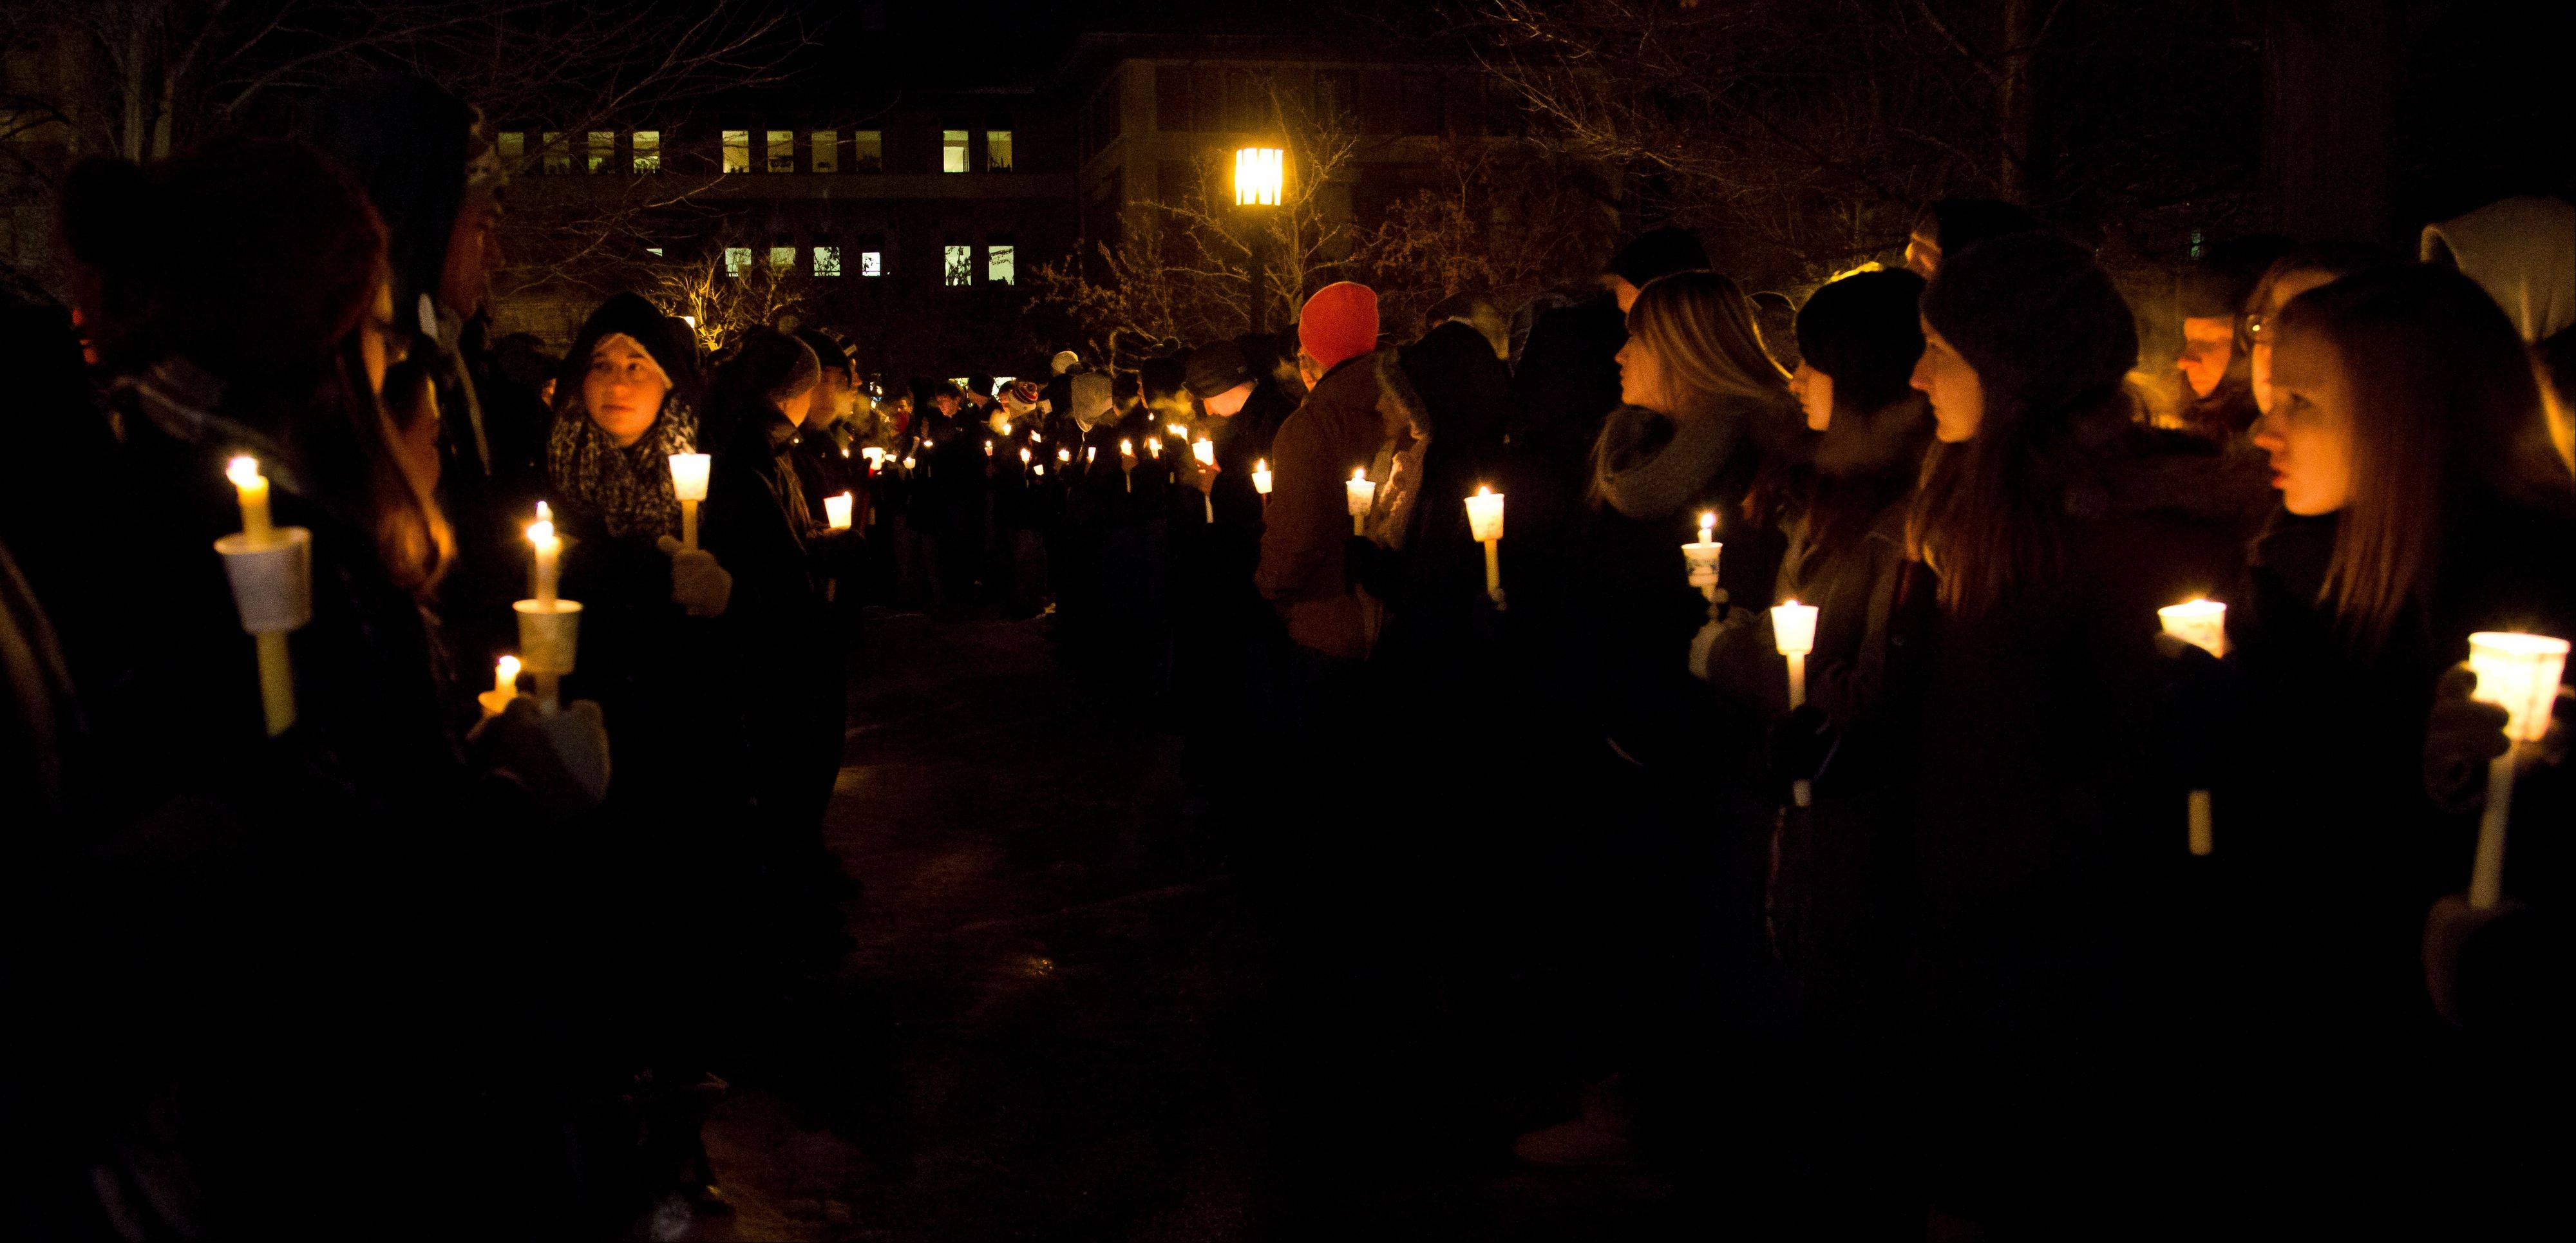 A path is lit for members of the Purdue marching band during a vigil for a teaching assistant who was fatally shot on campus at Purdue University, on Tuesday, Jan. 21, 2014, in West Lafayette, Ind.